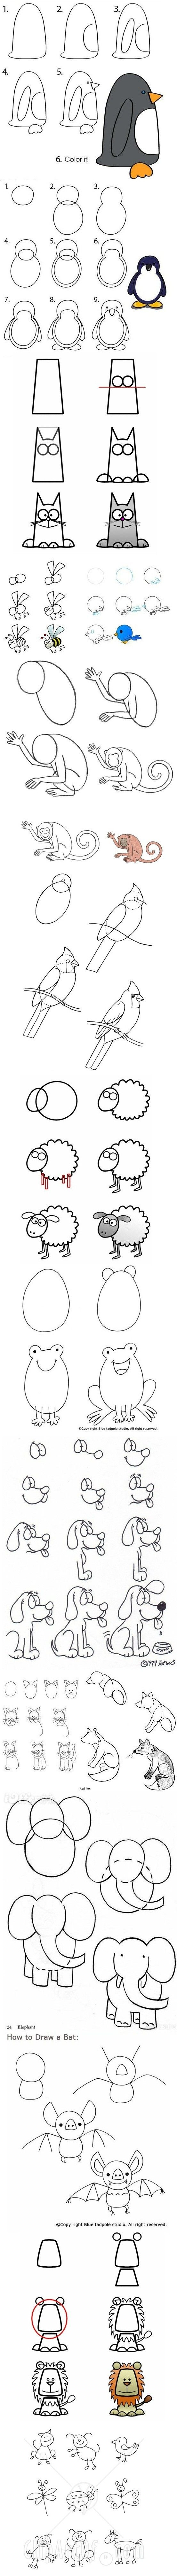 How to draw animals—great for (or to impress) kids.